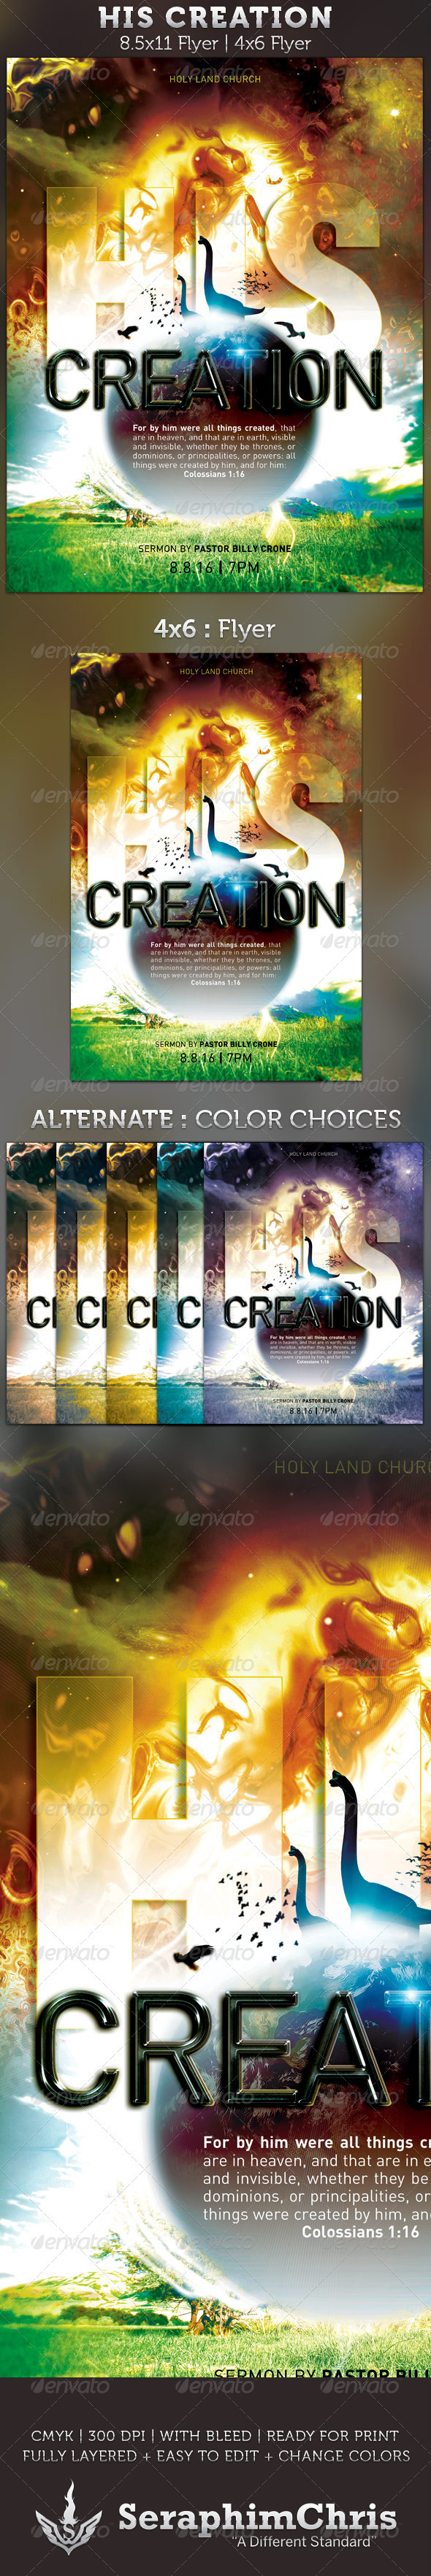 His Creation: Church Flyer template - Church Flyers